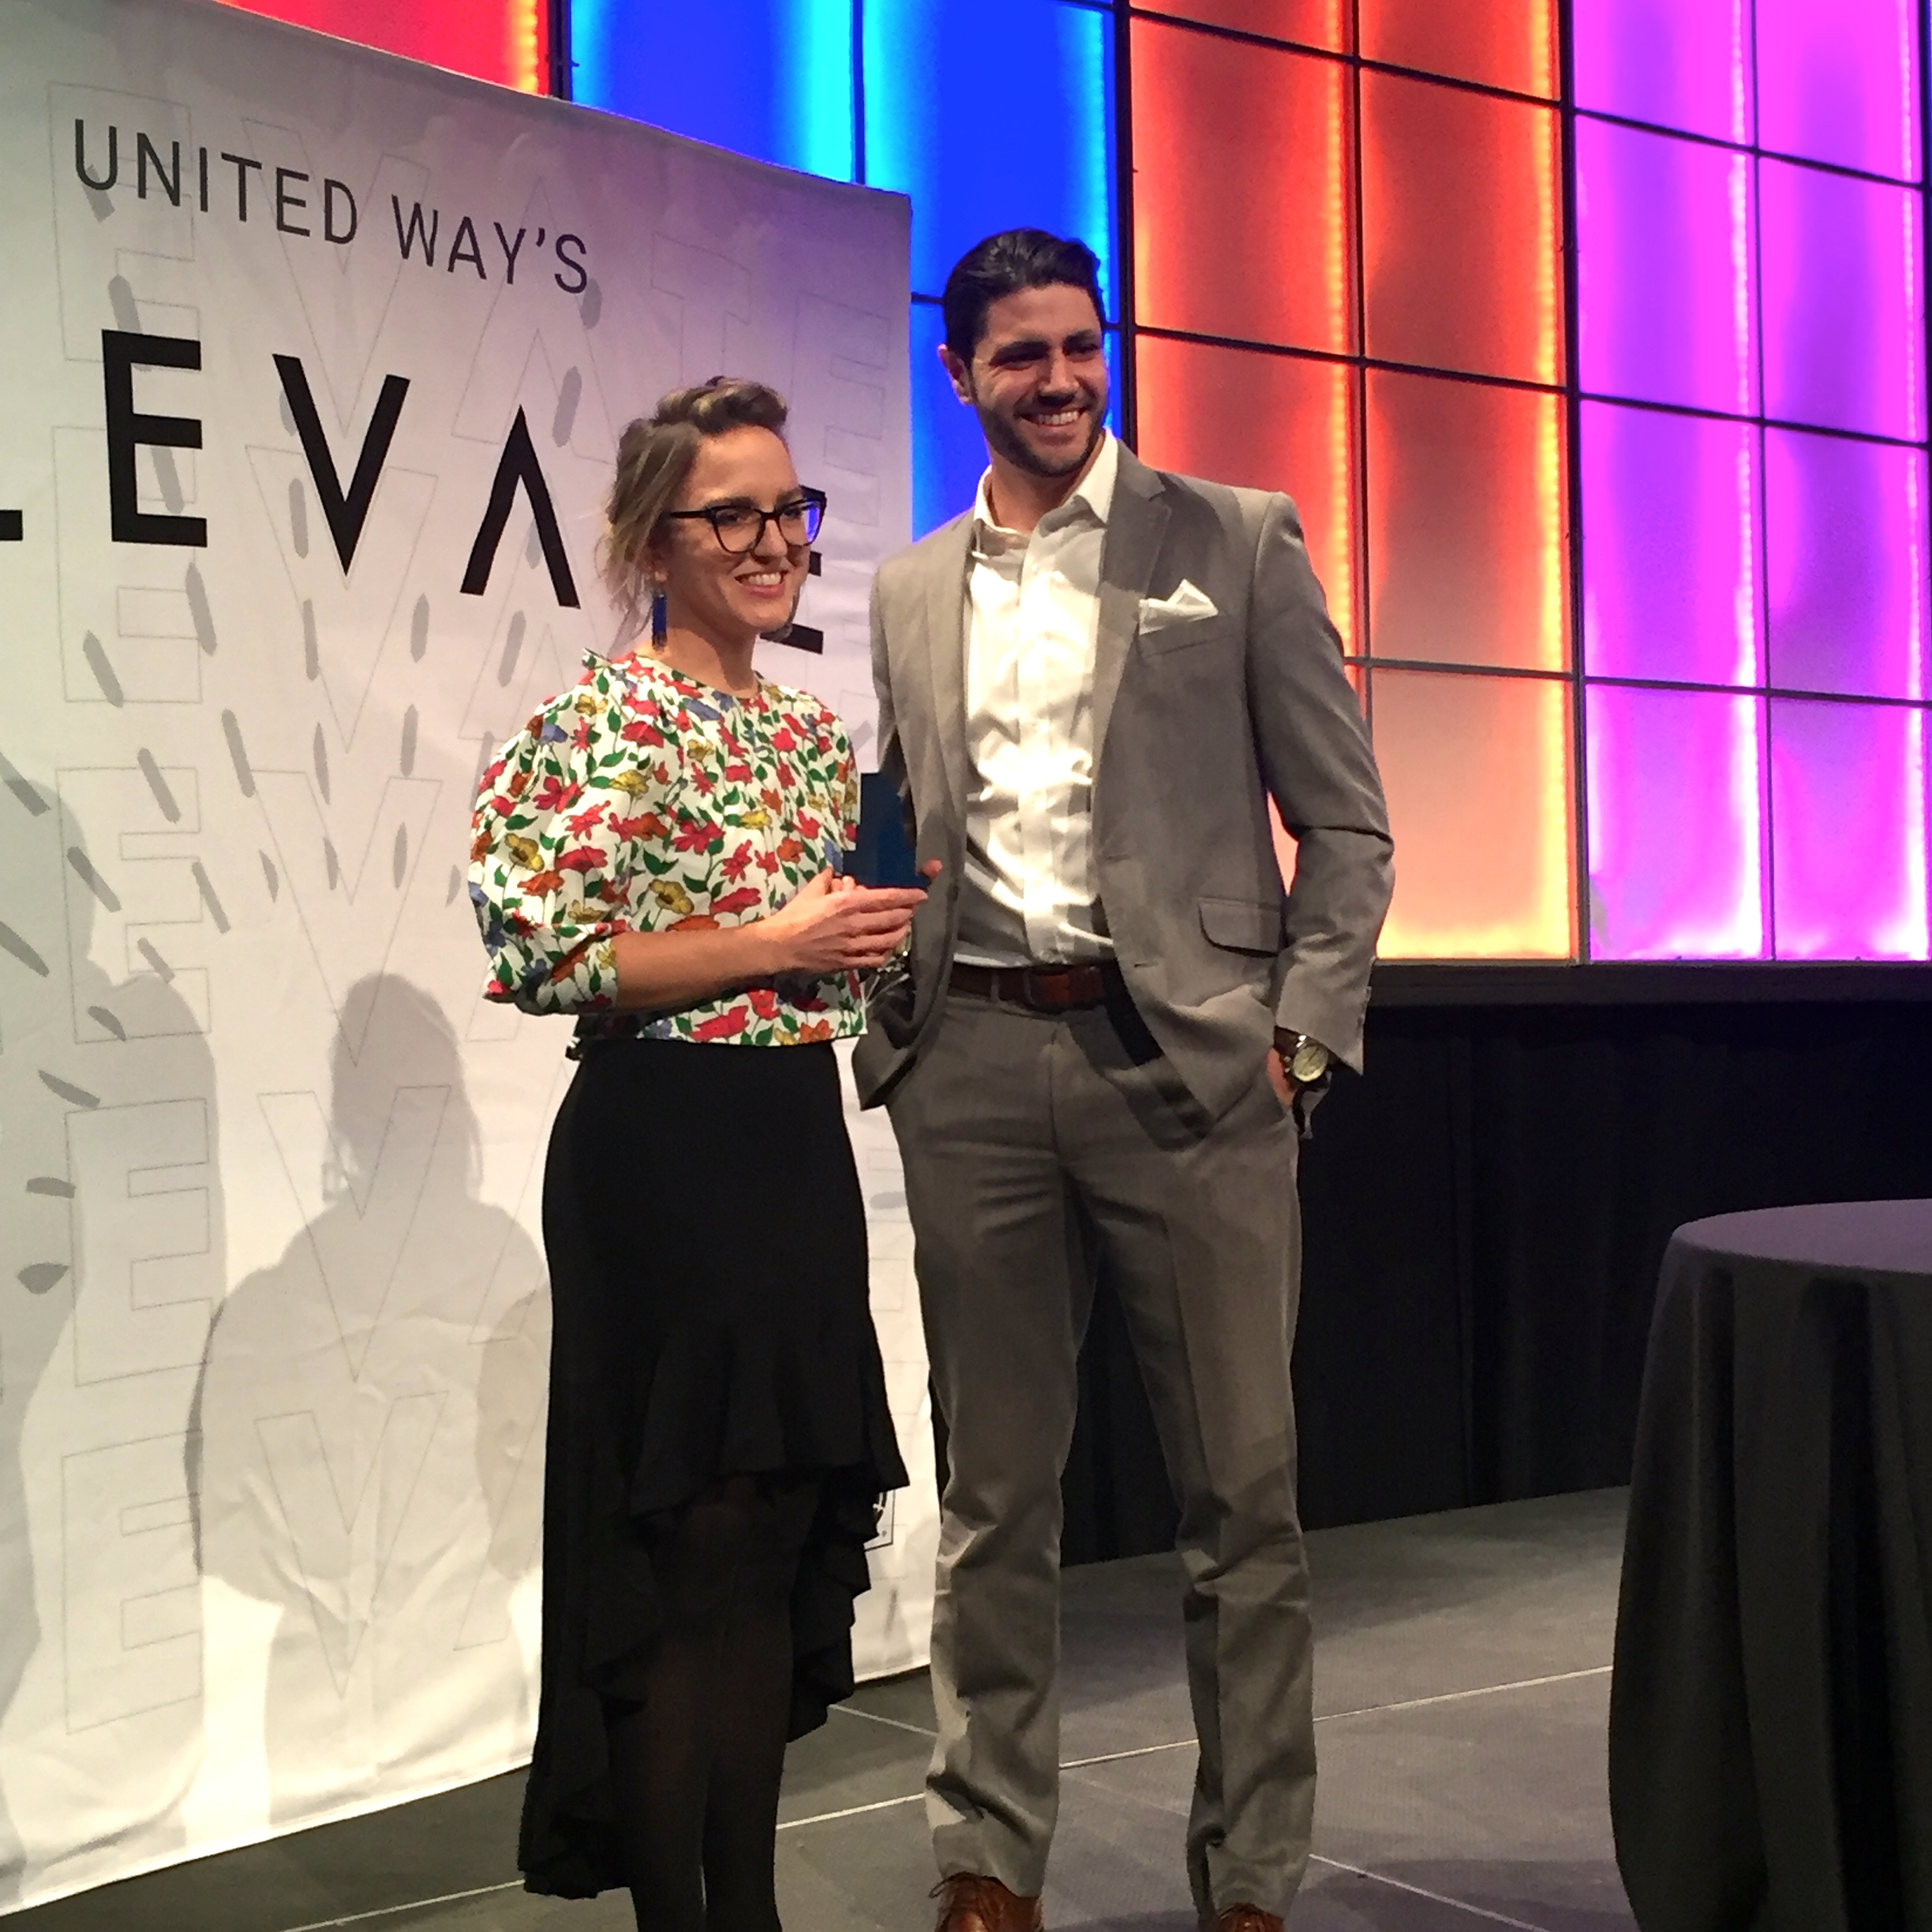 Katie accepting her United Way of Central Indiana Volunteer of the Year ELEVATE award